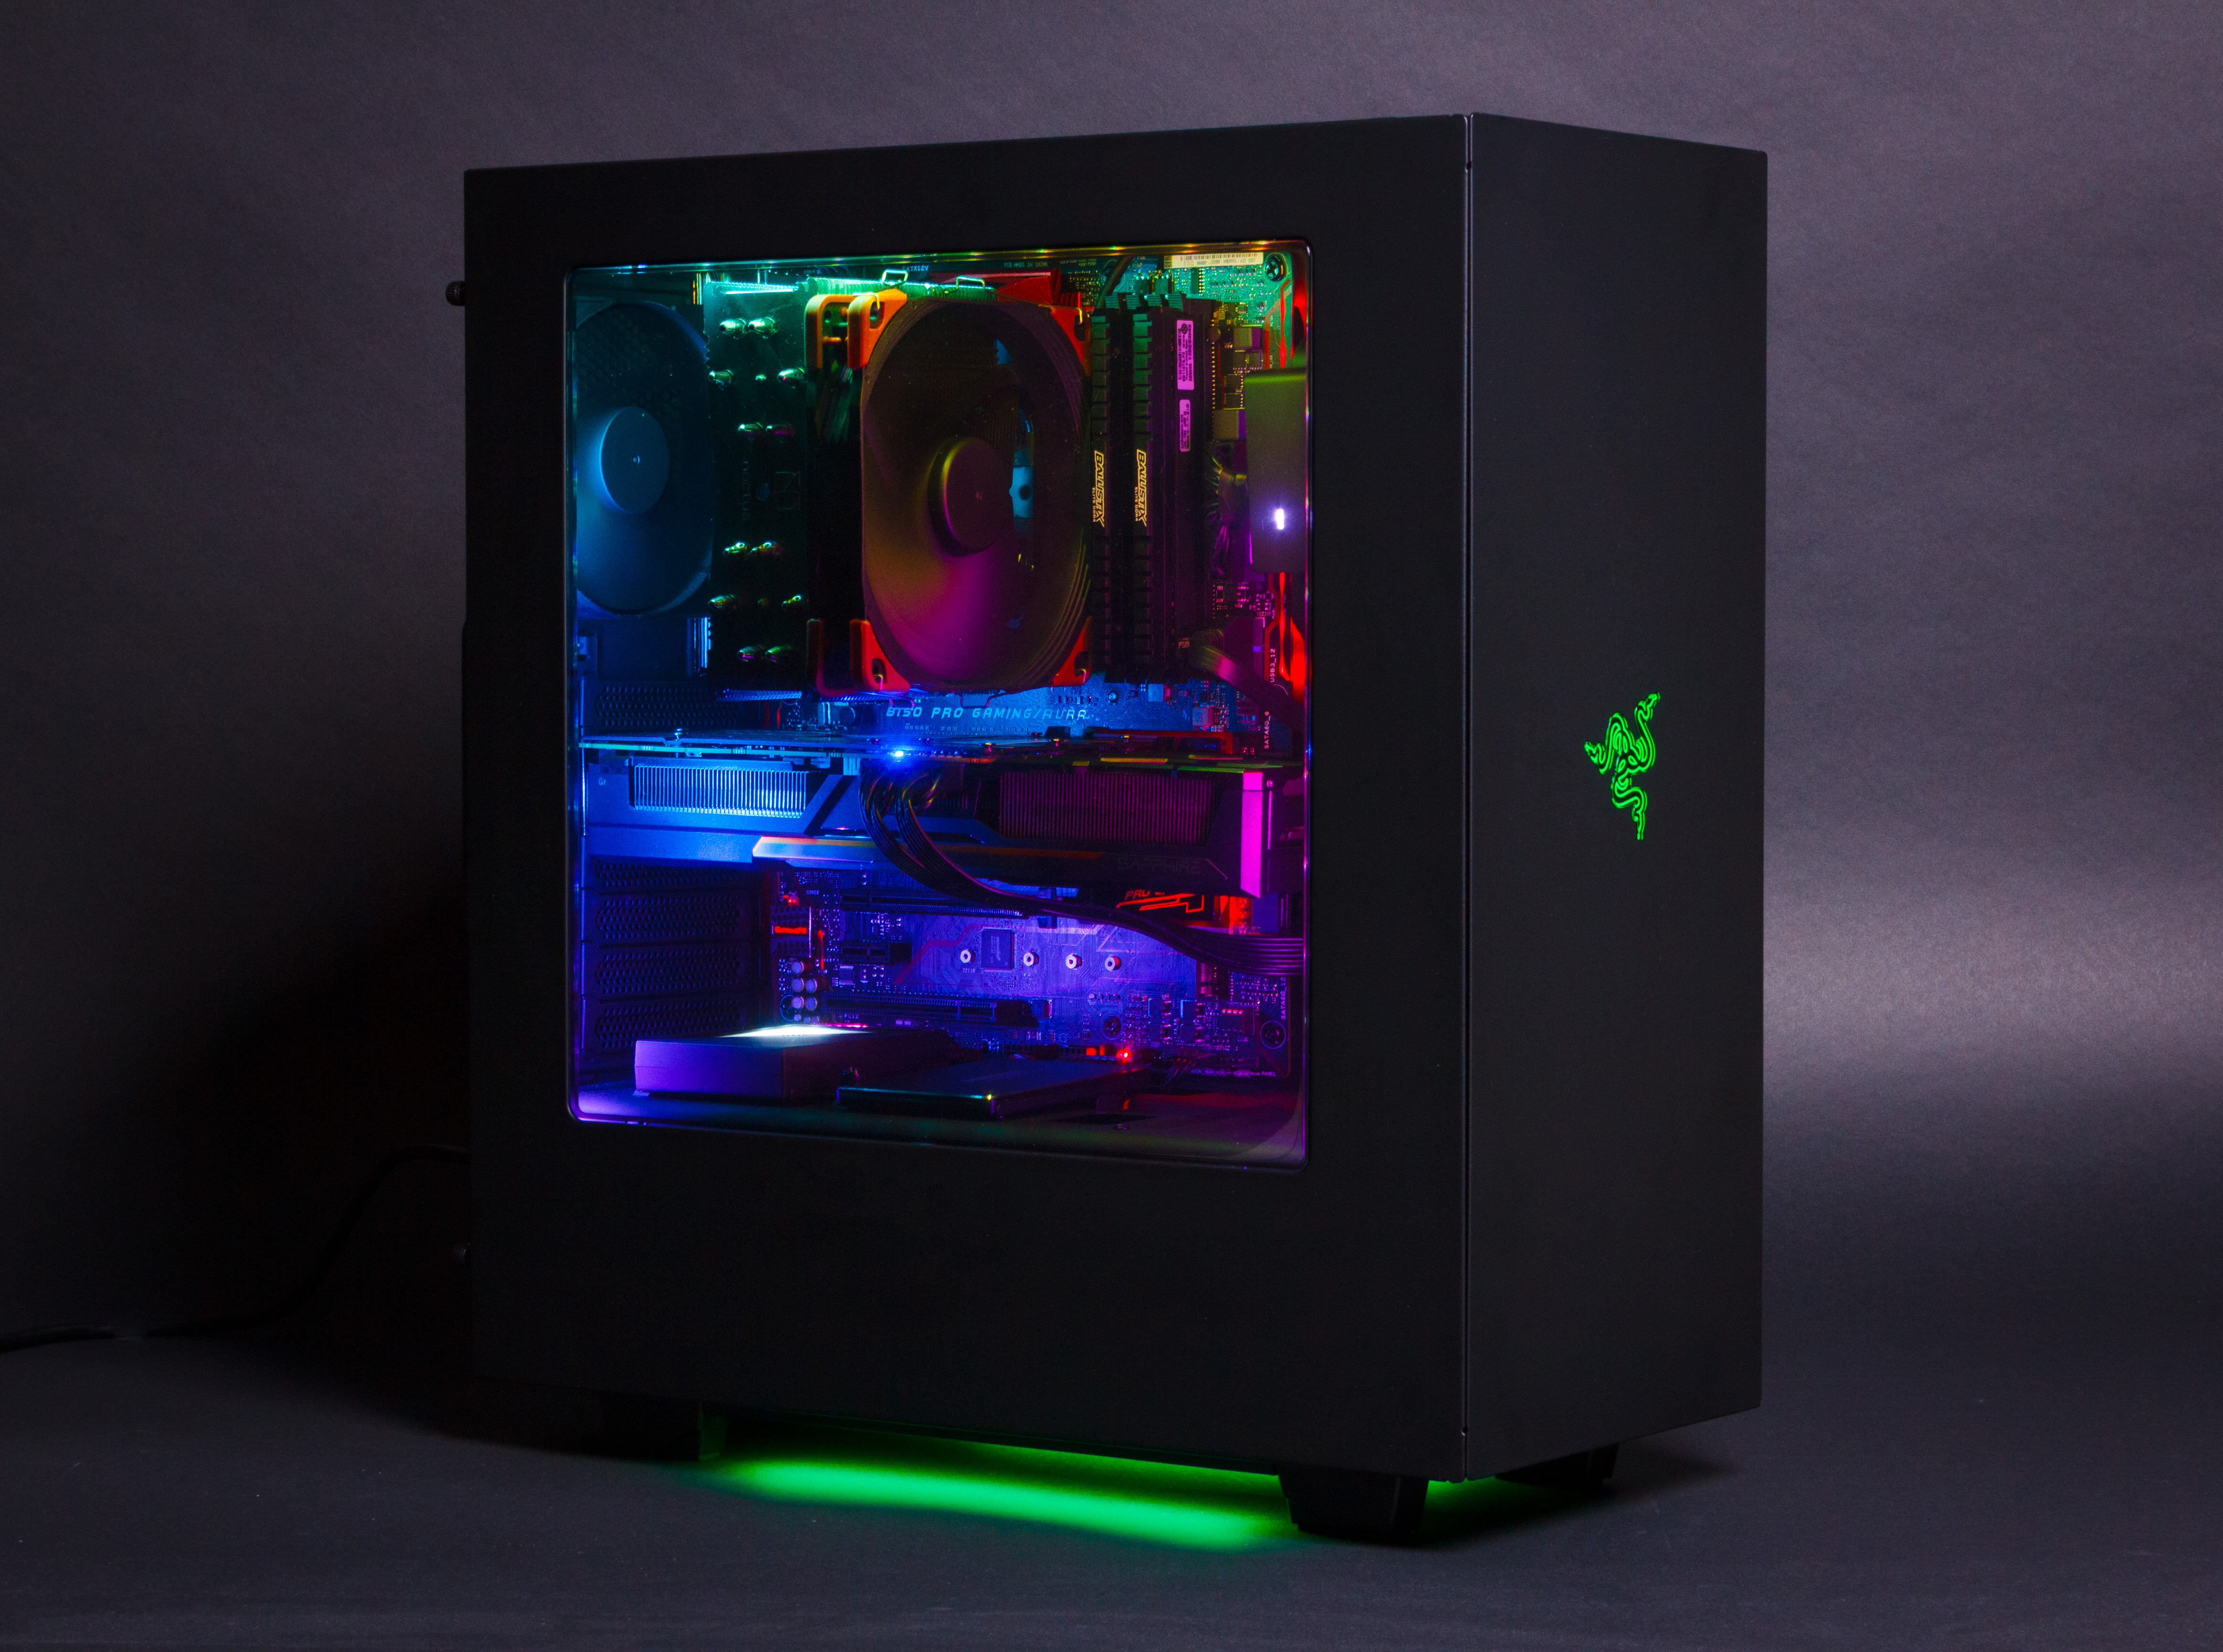 Hue Producten Review: Nzxt Hue+ Advanced Pc Lighting | Computer Idee